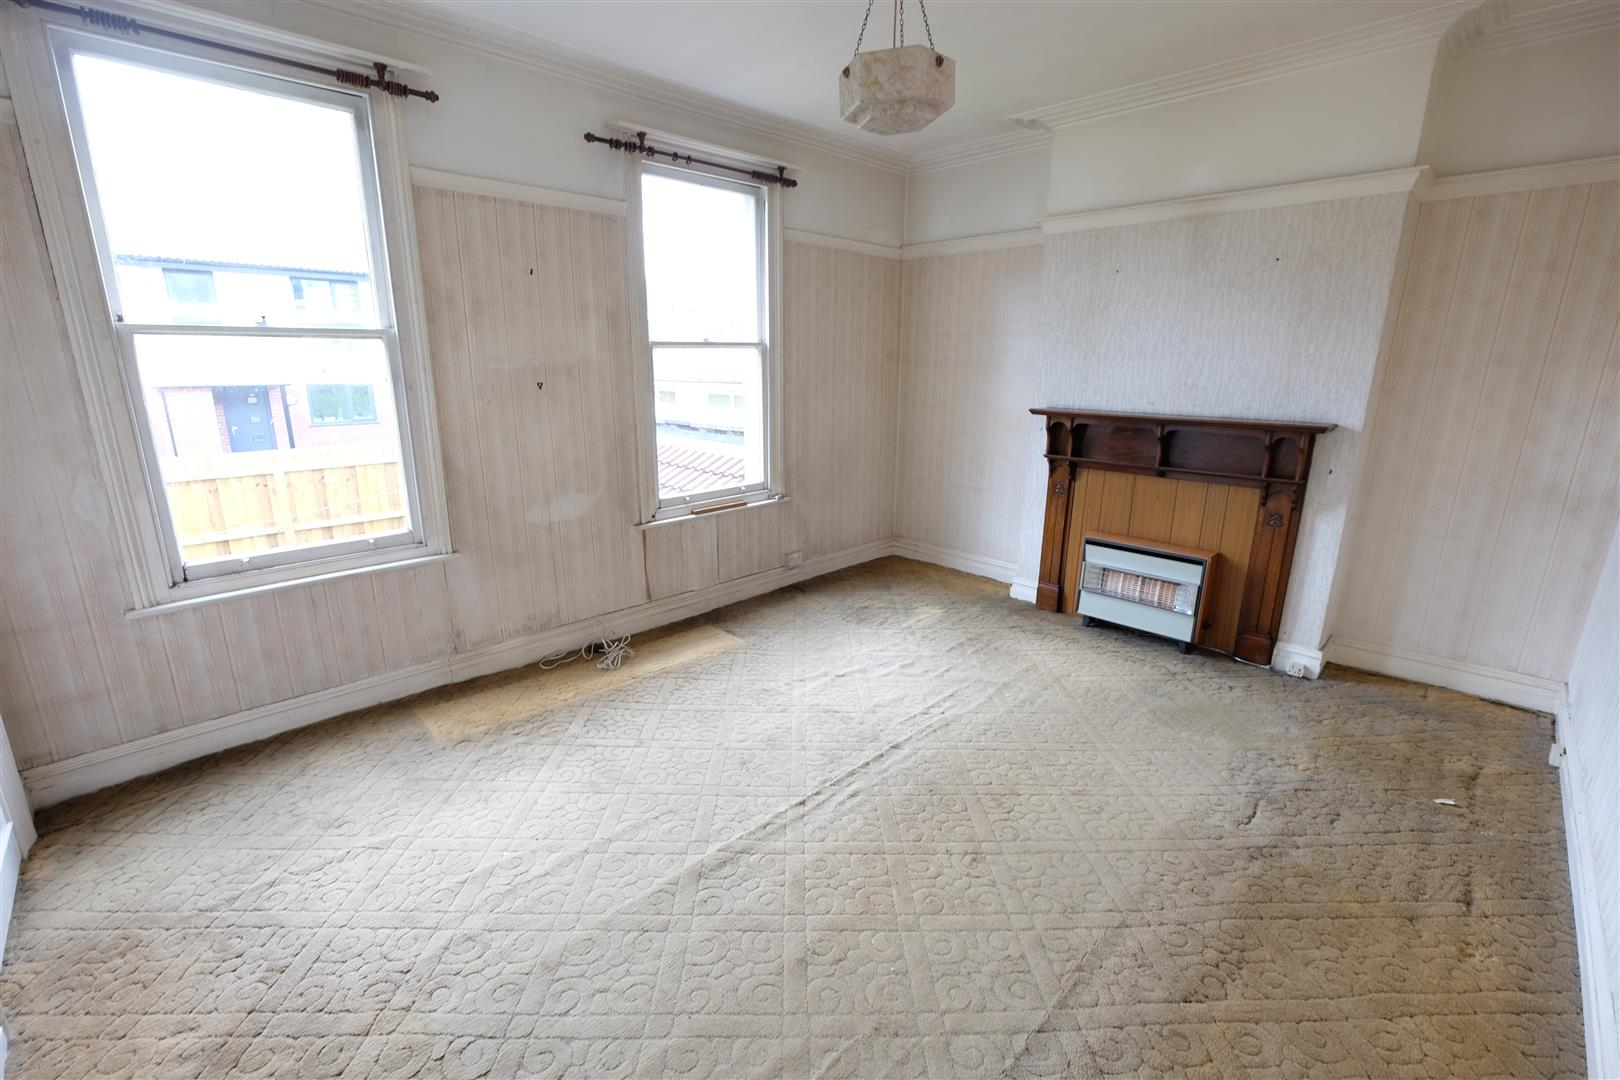 Images for PLANNING GRANTED 6 BED HMO EAID:hollismoapi BID:11